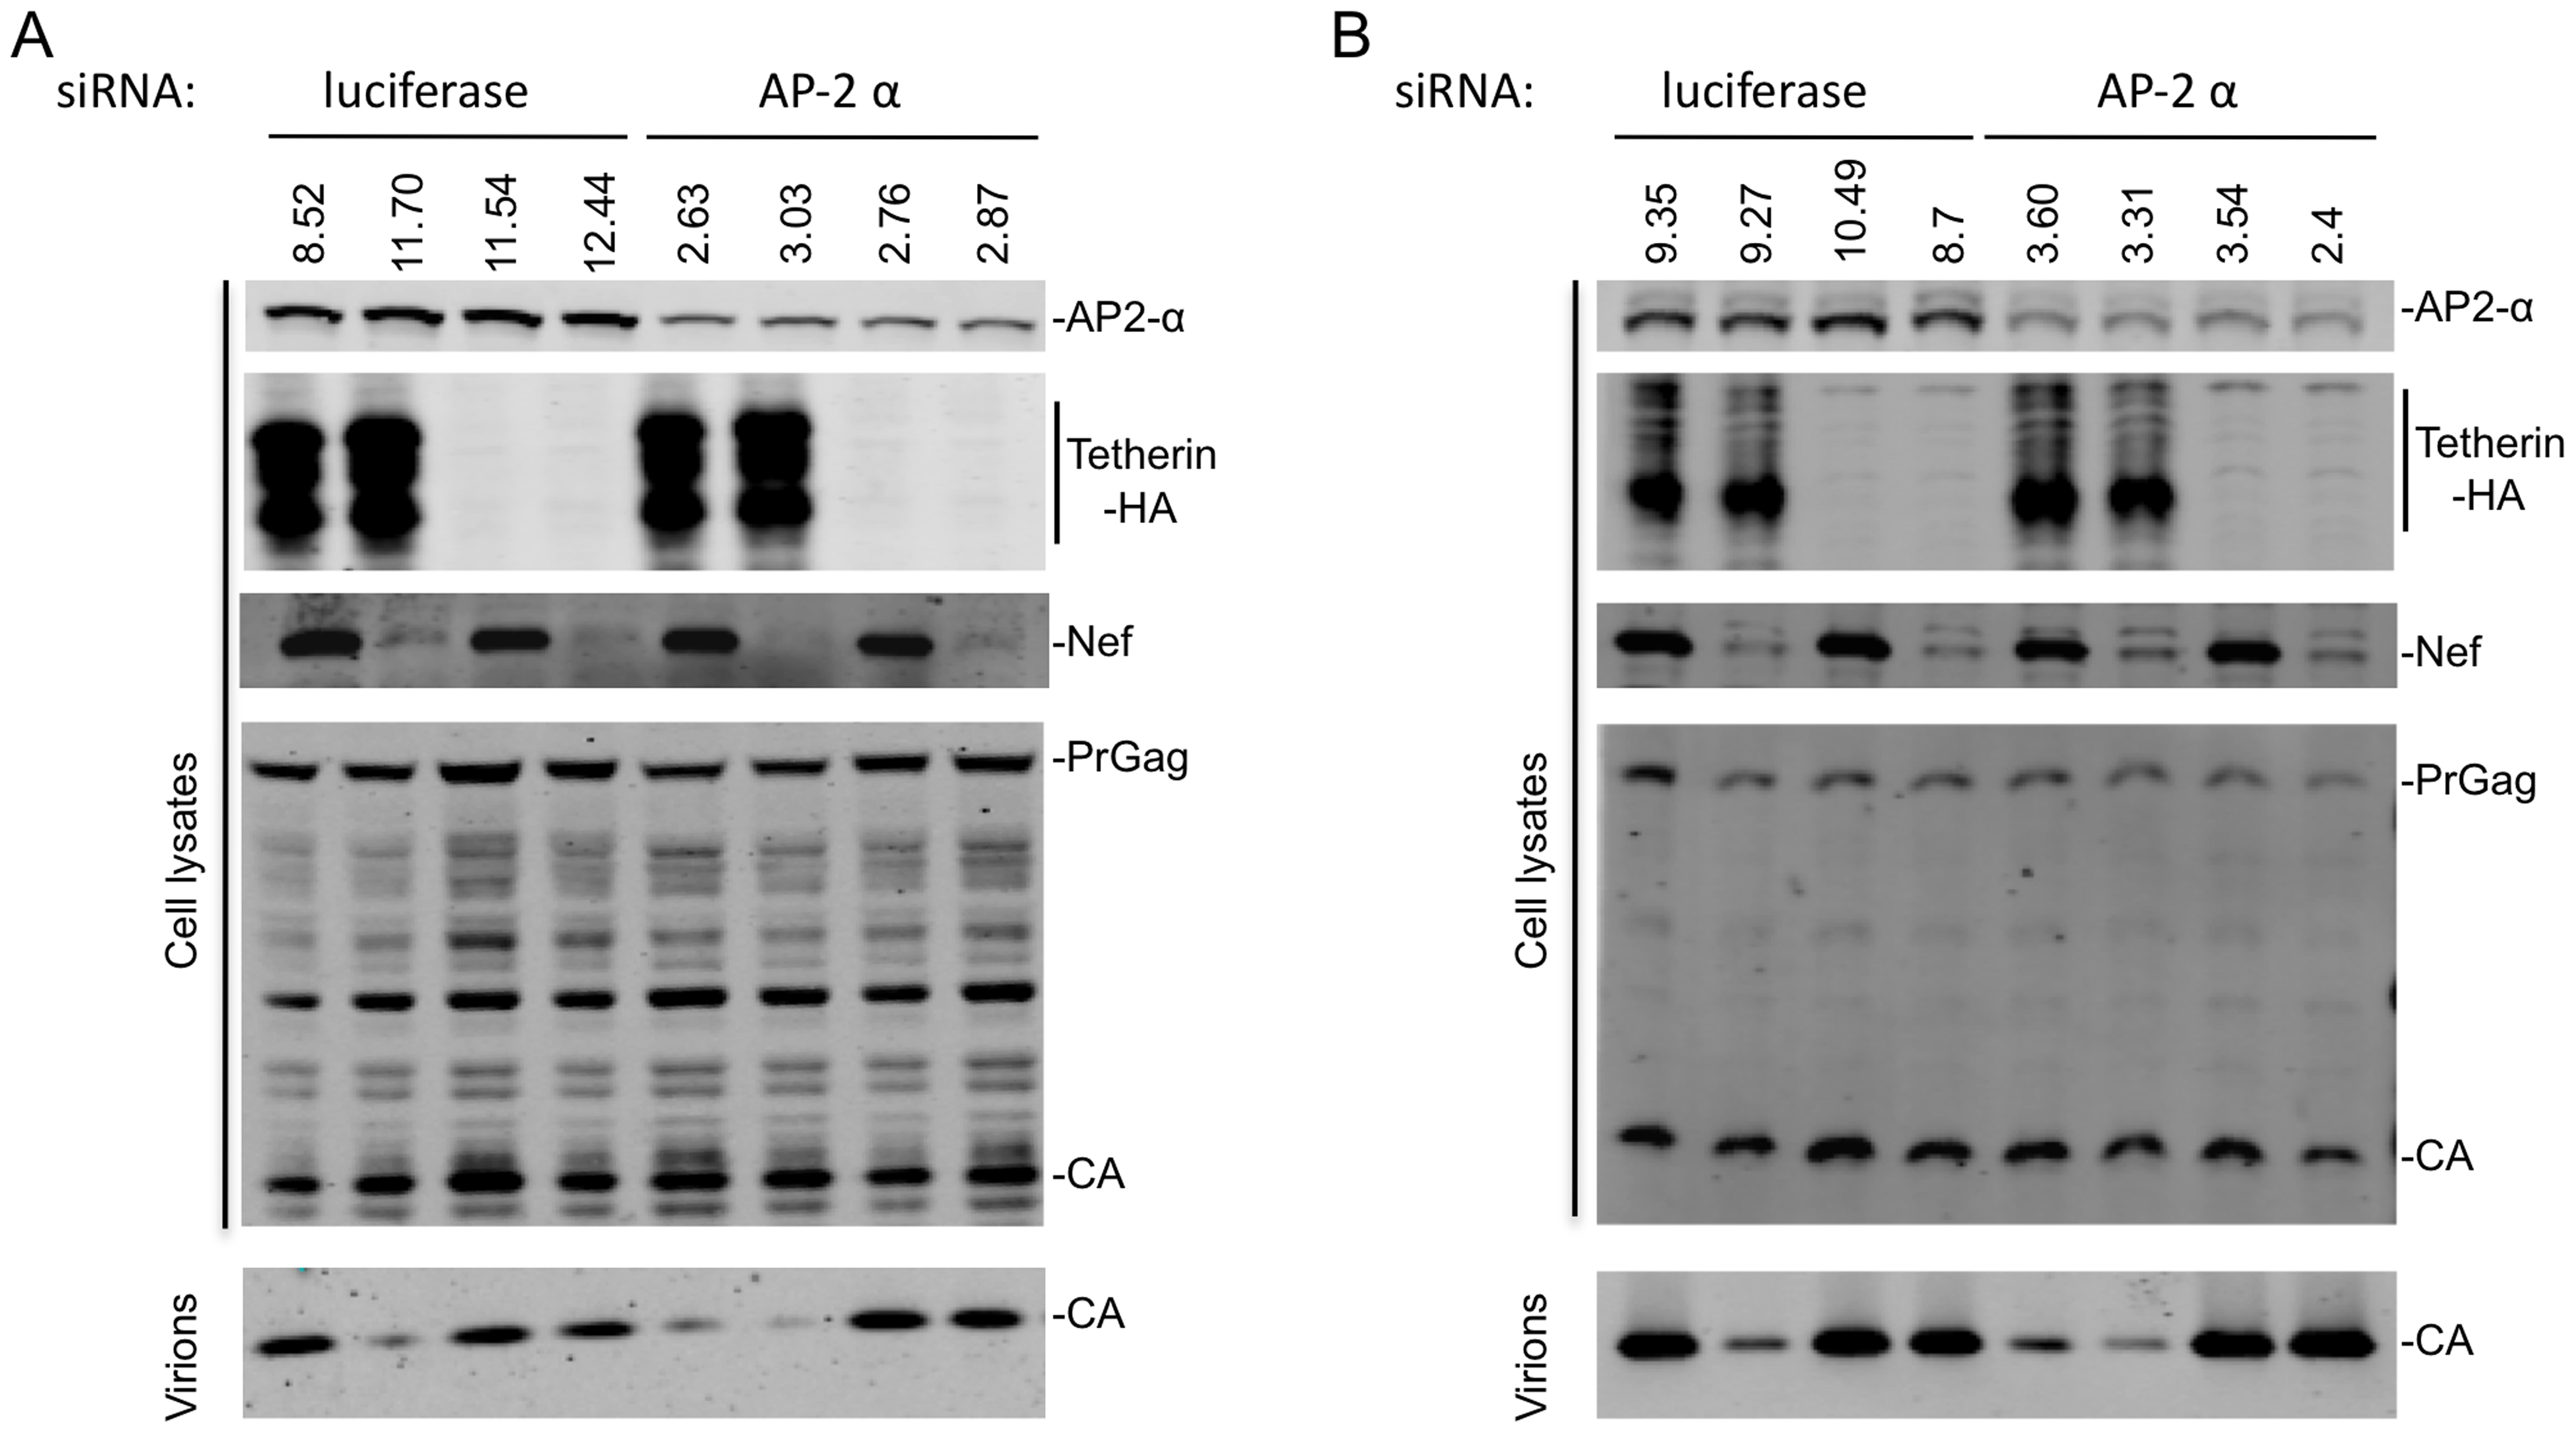 AP-2 is required for Nef to antagonize Tetherin.